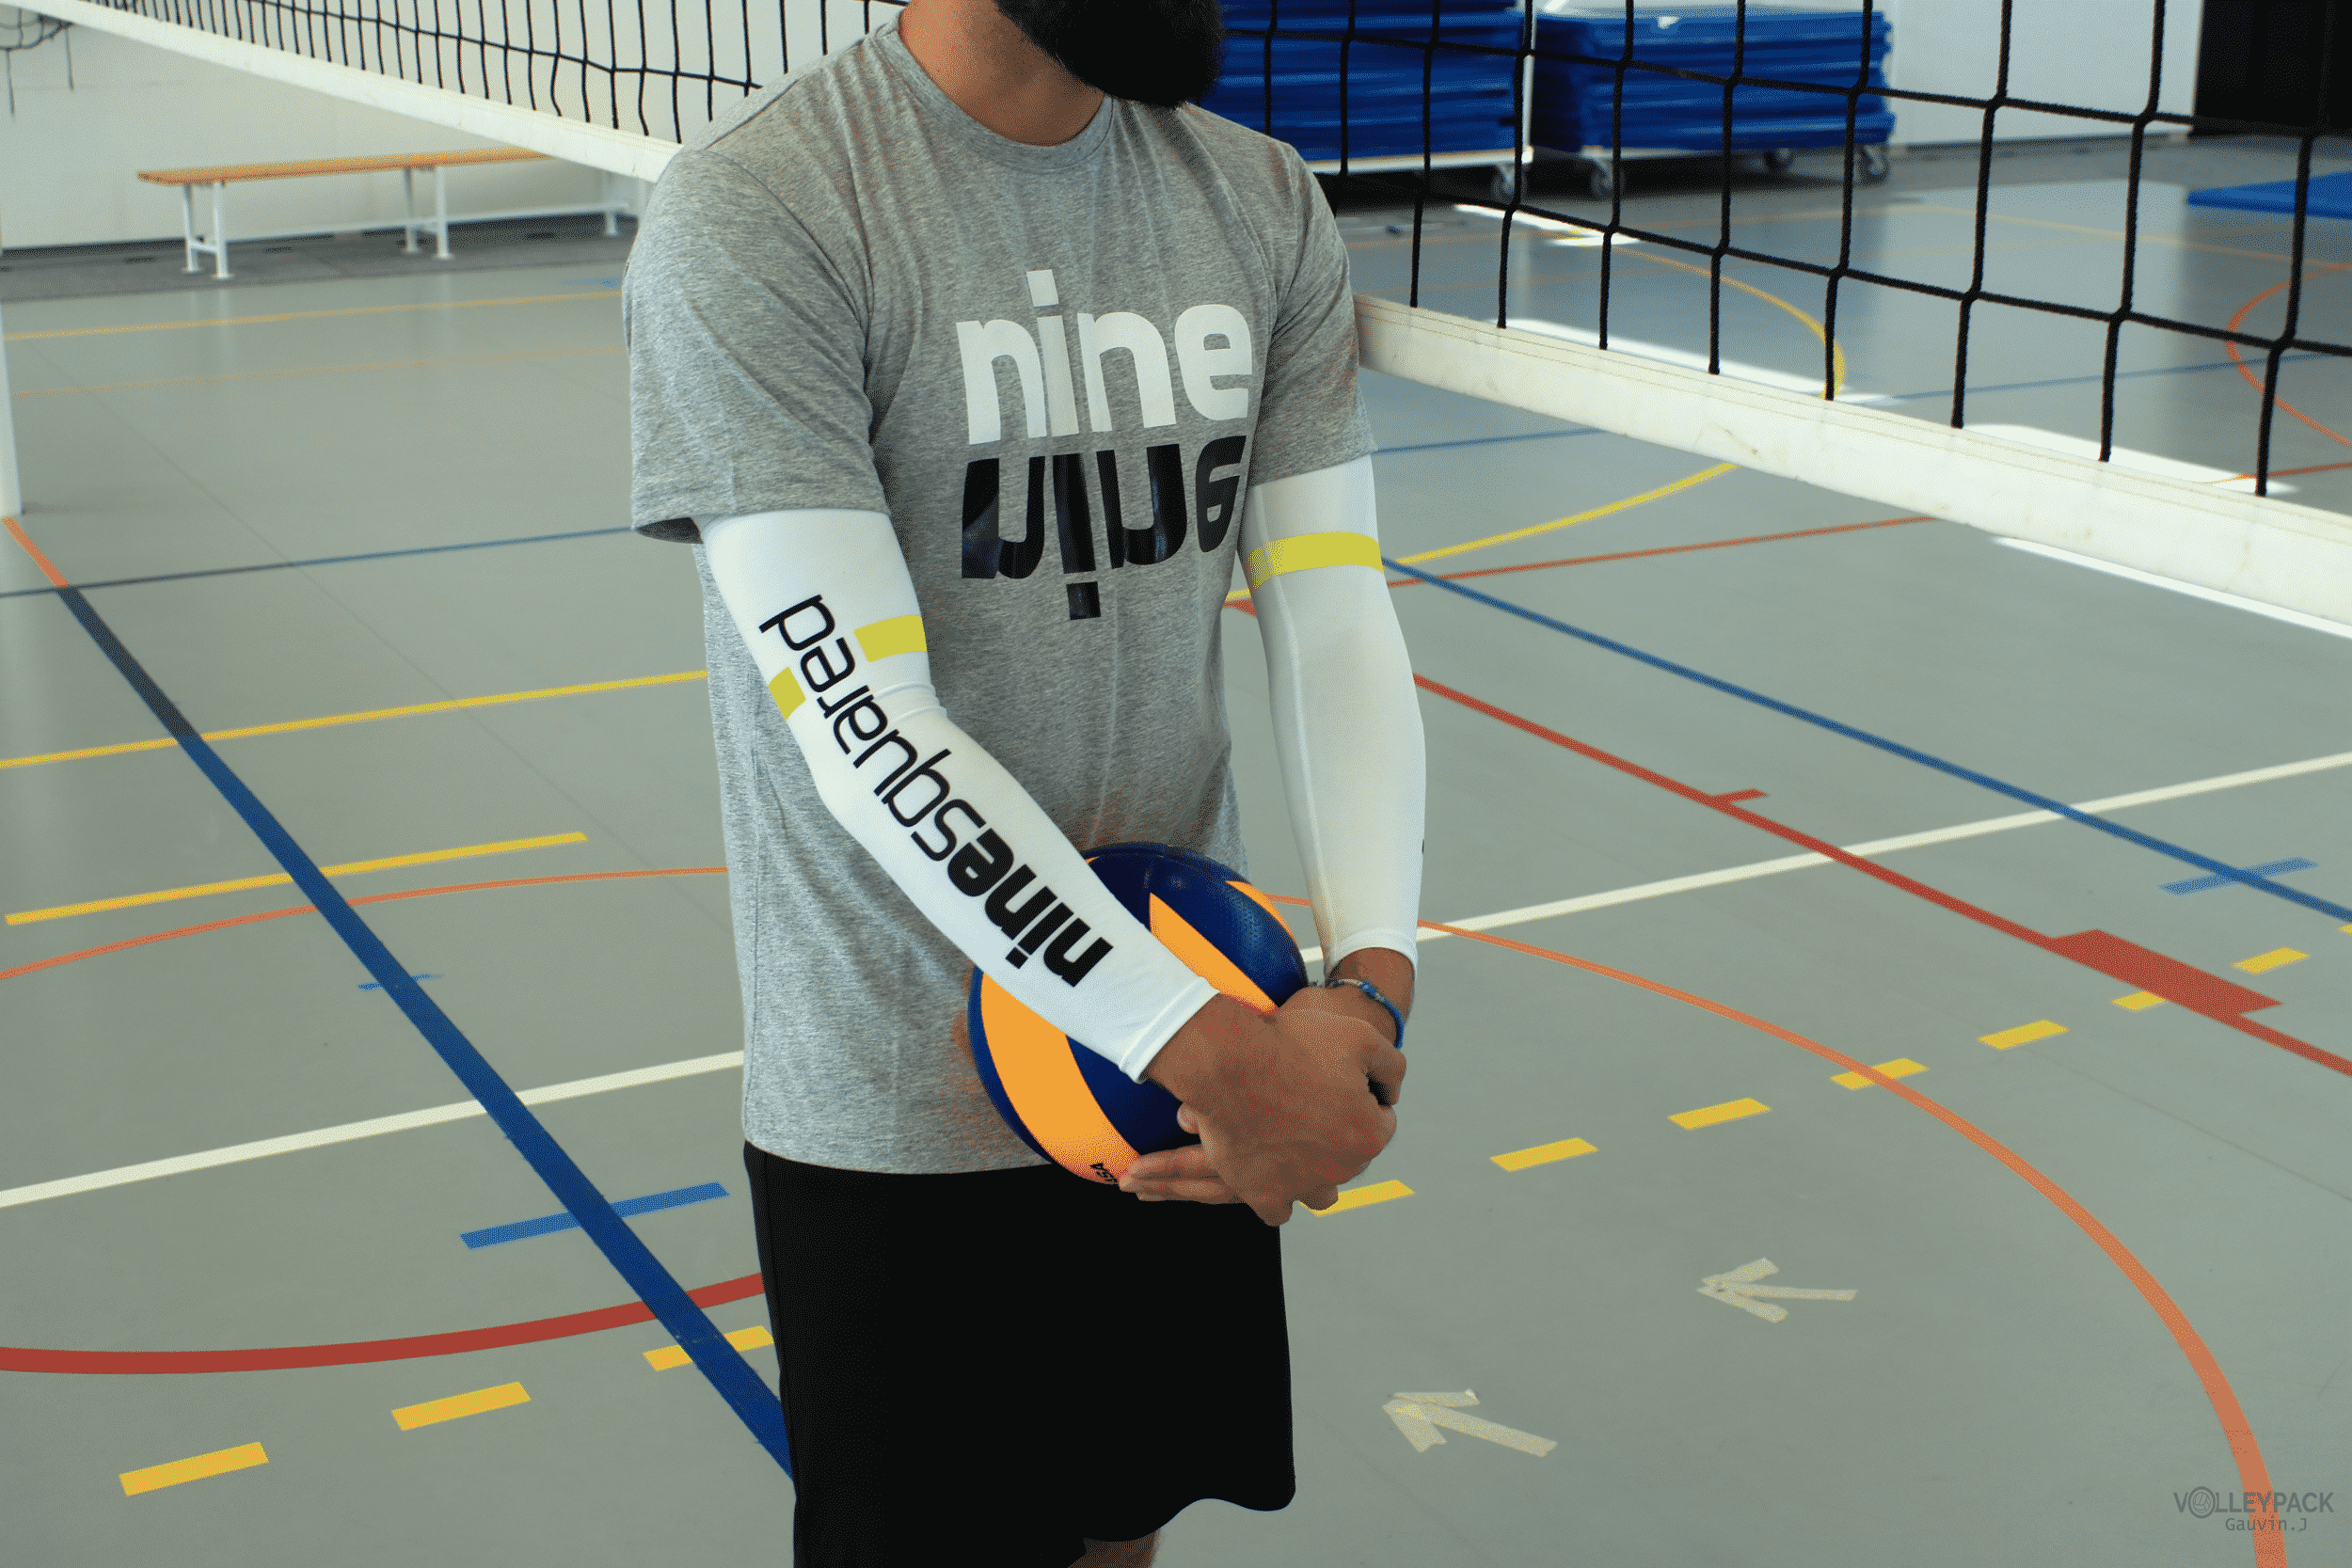 test-volleypack-manchons-volley-ninesquared-arm-sleeves-2019-9